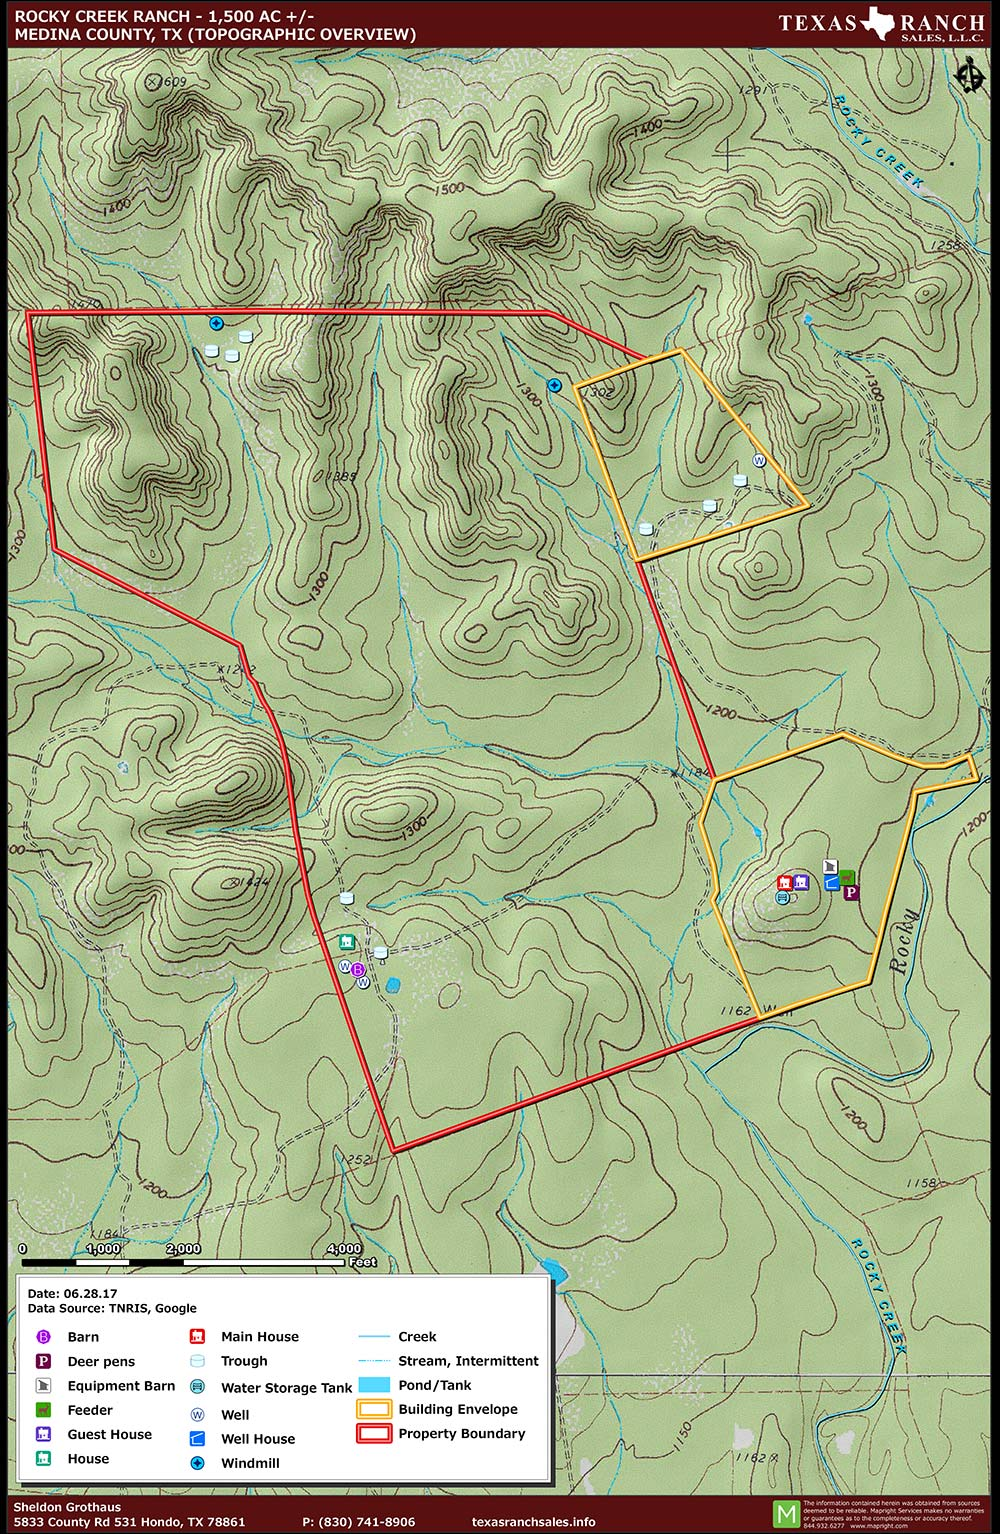 1354 Acre Ranch Medina Topography Map